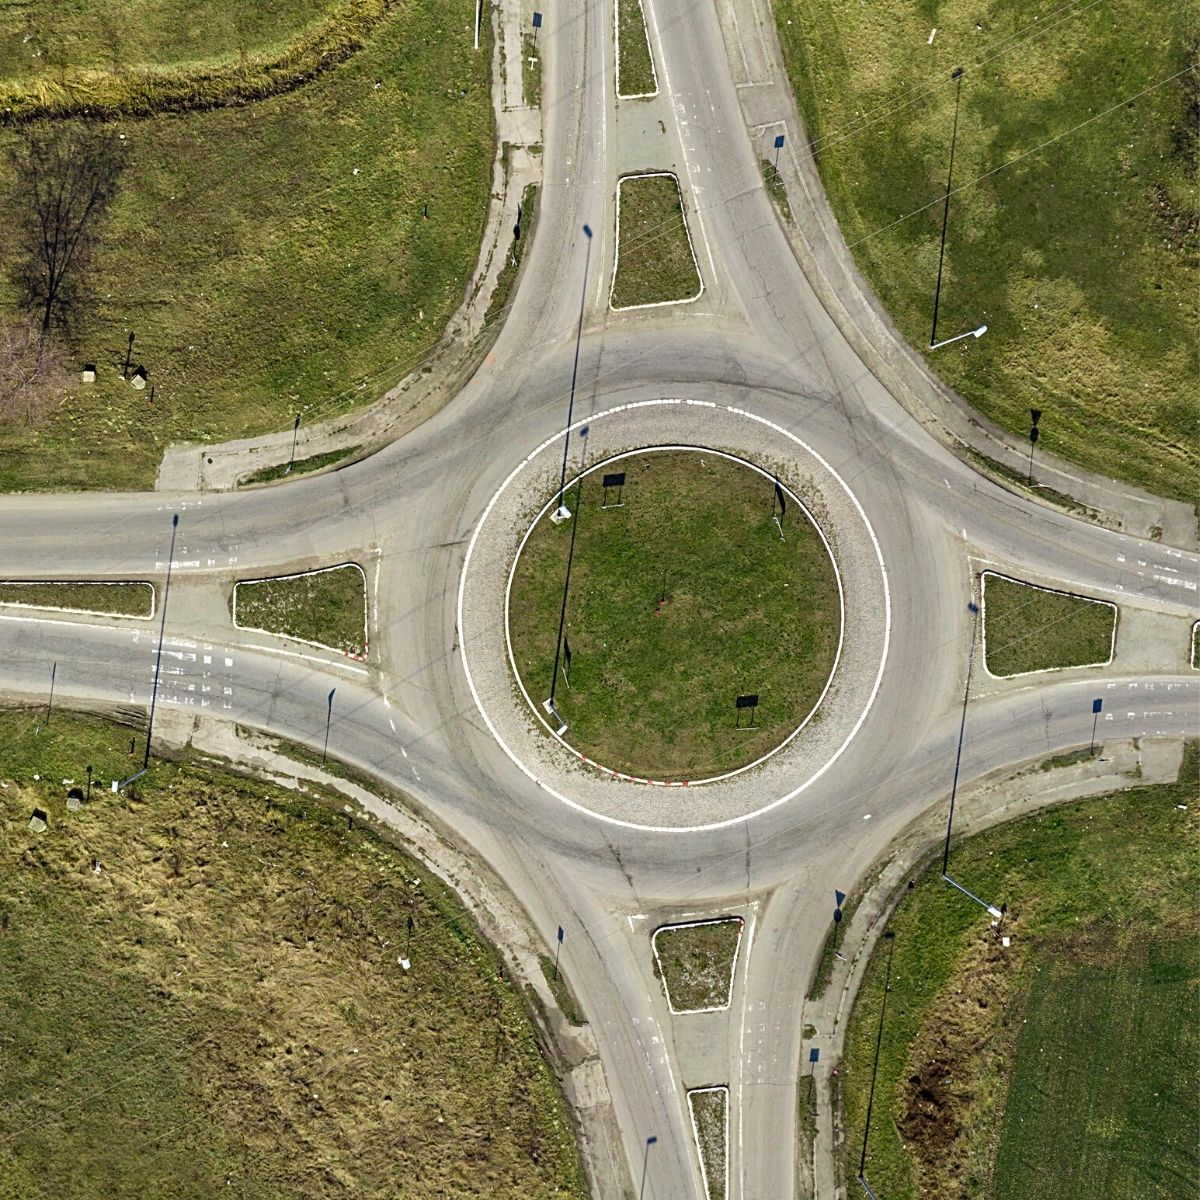 Aerial view of a roundabout with four roads accessing the junction